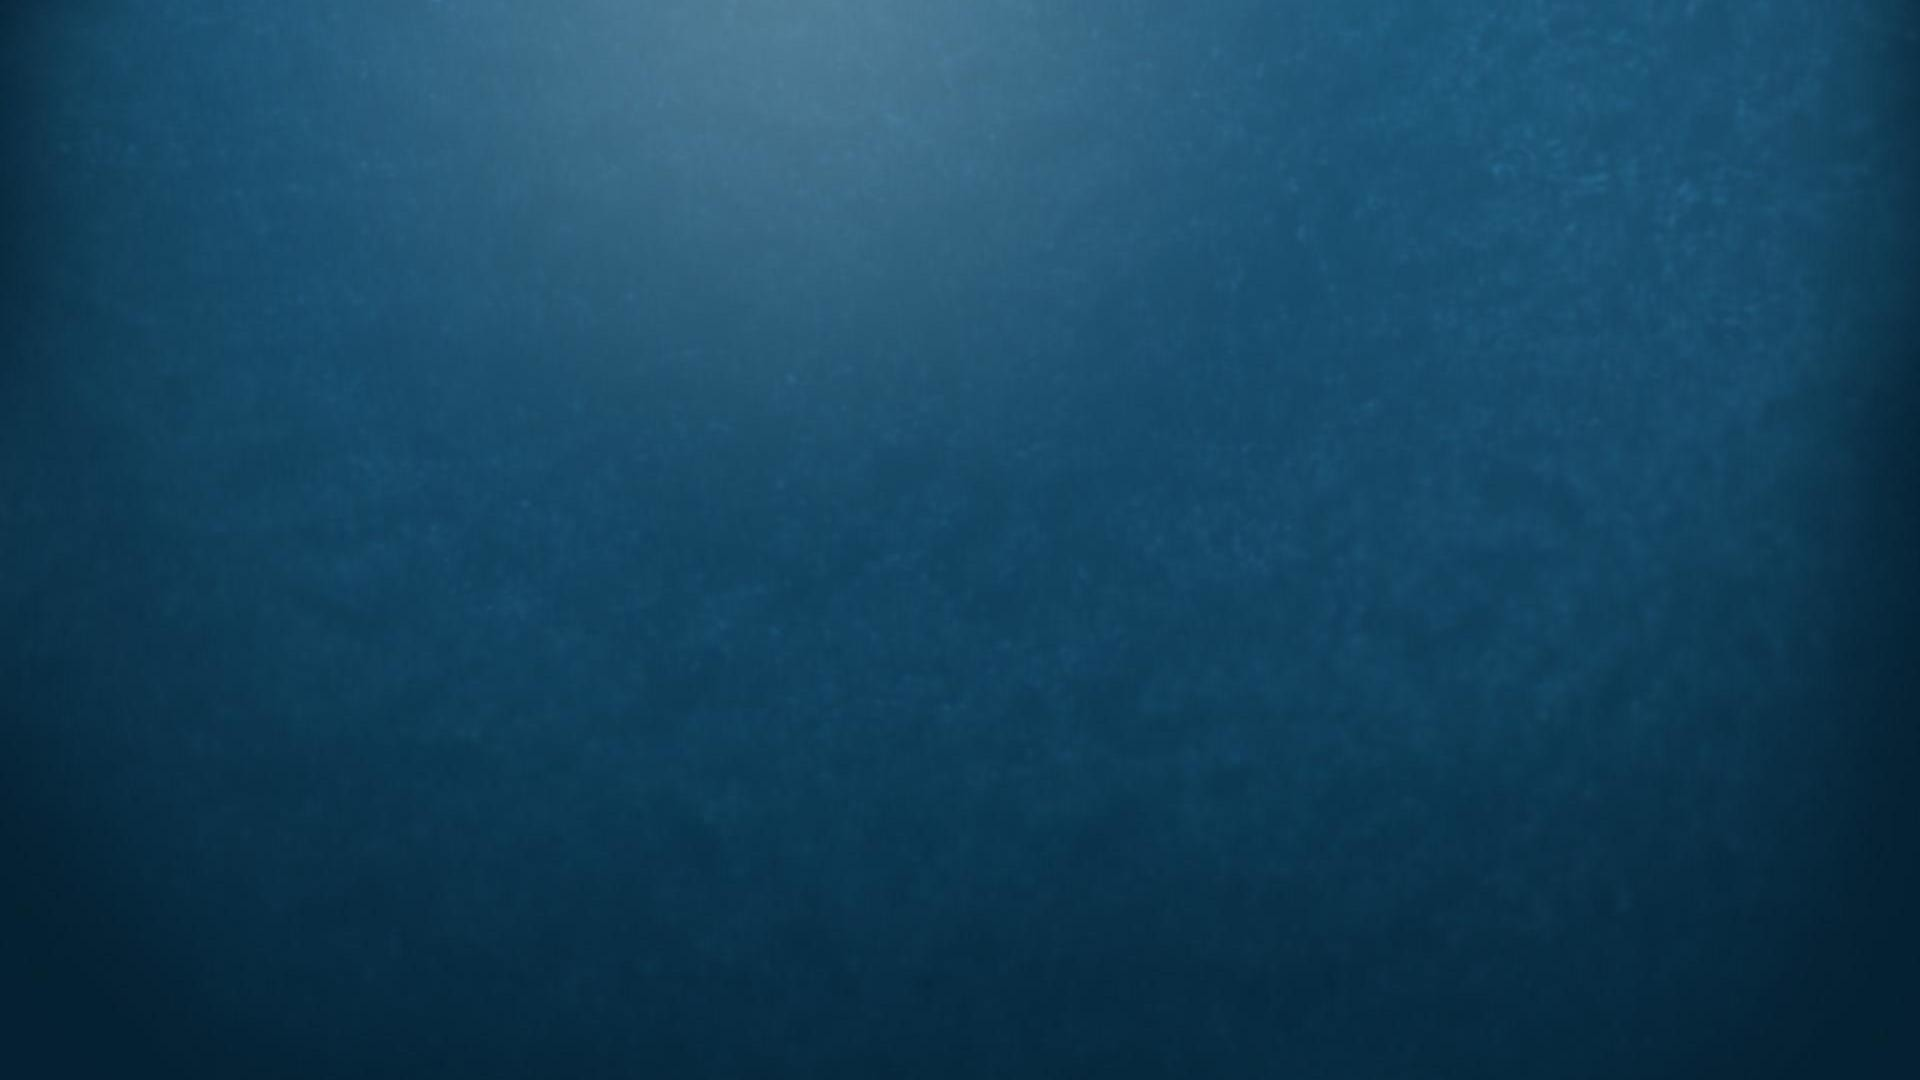 1920x1080 Wallpaper Plain Blue Hd Background Desktop